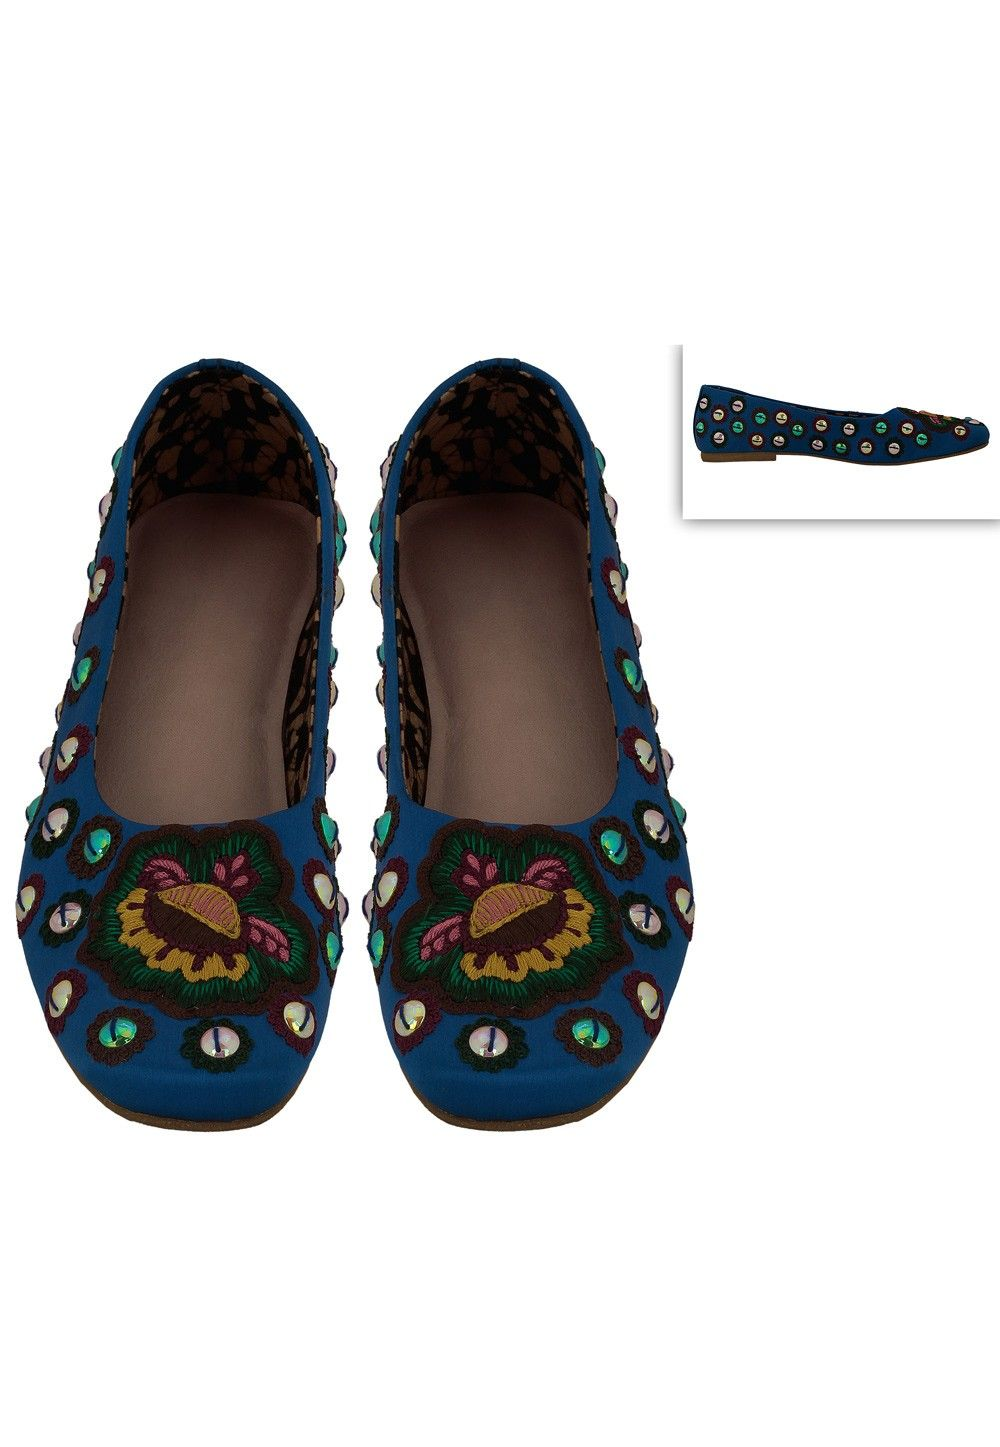 Embroidered Art Silk Ballerinas in Royal Blue